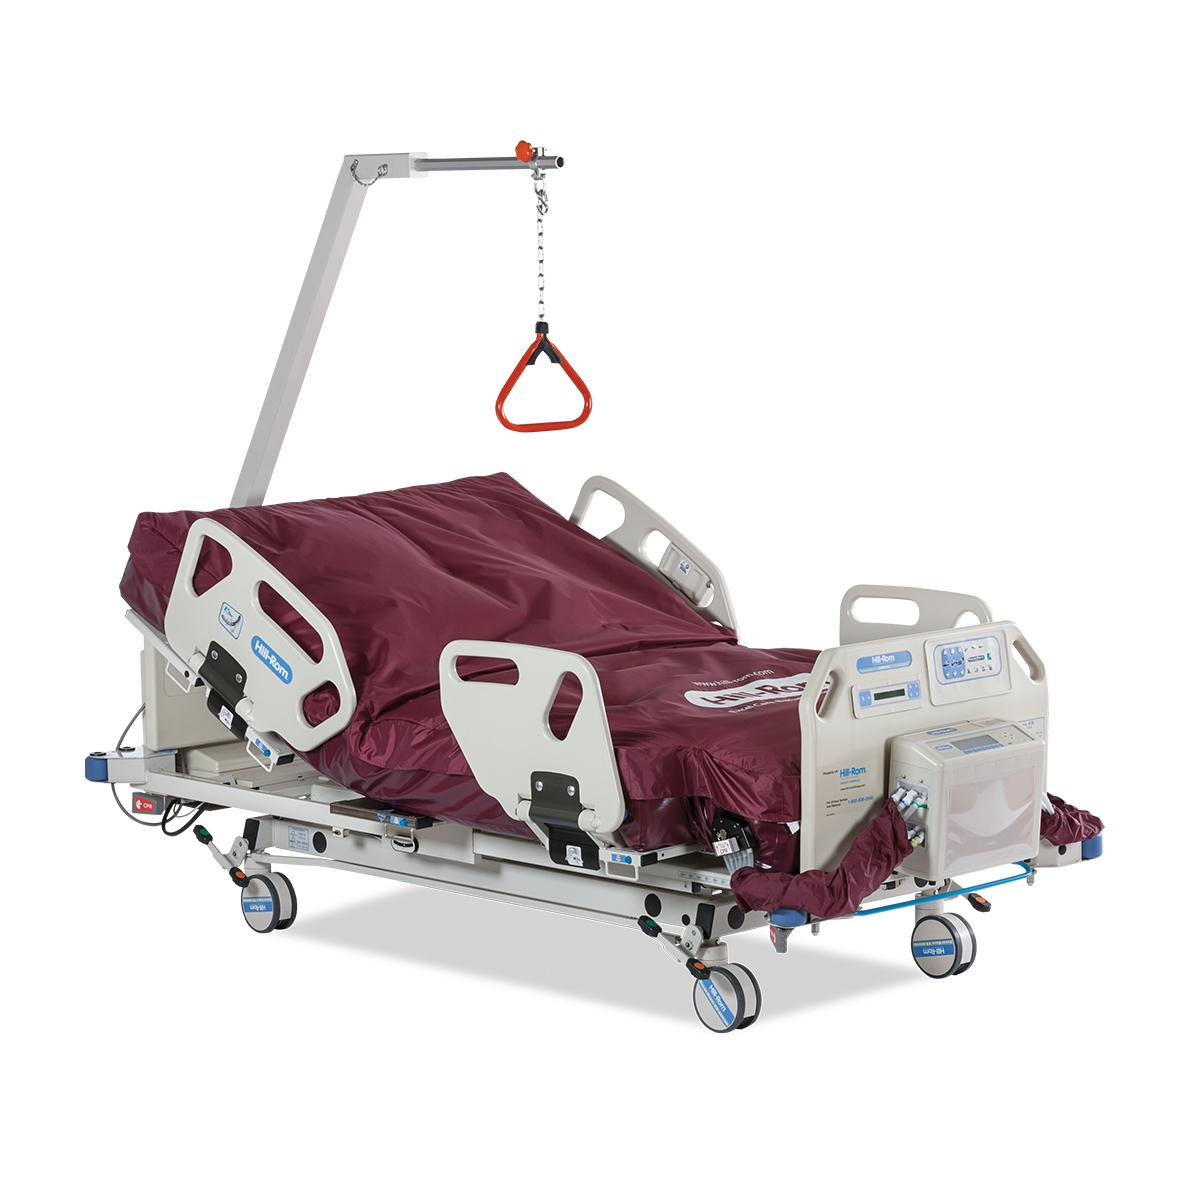 Excel Care ES Bariatric Hospital Bed, 3/4 view, head of bed raised with trapeze